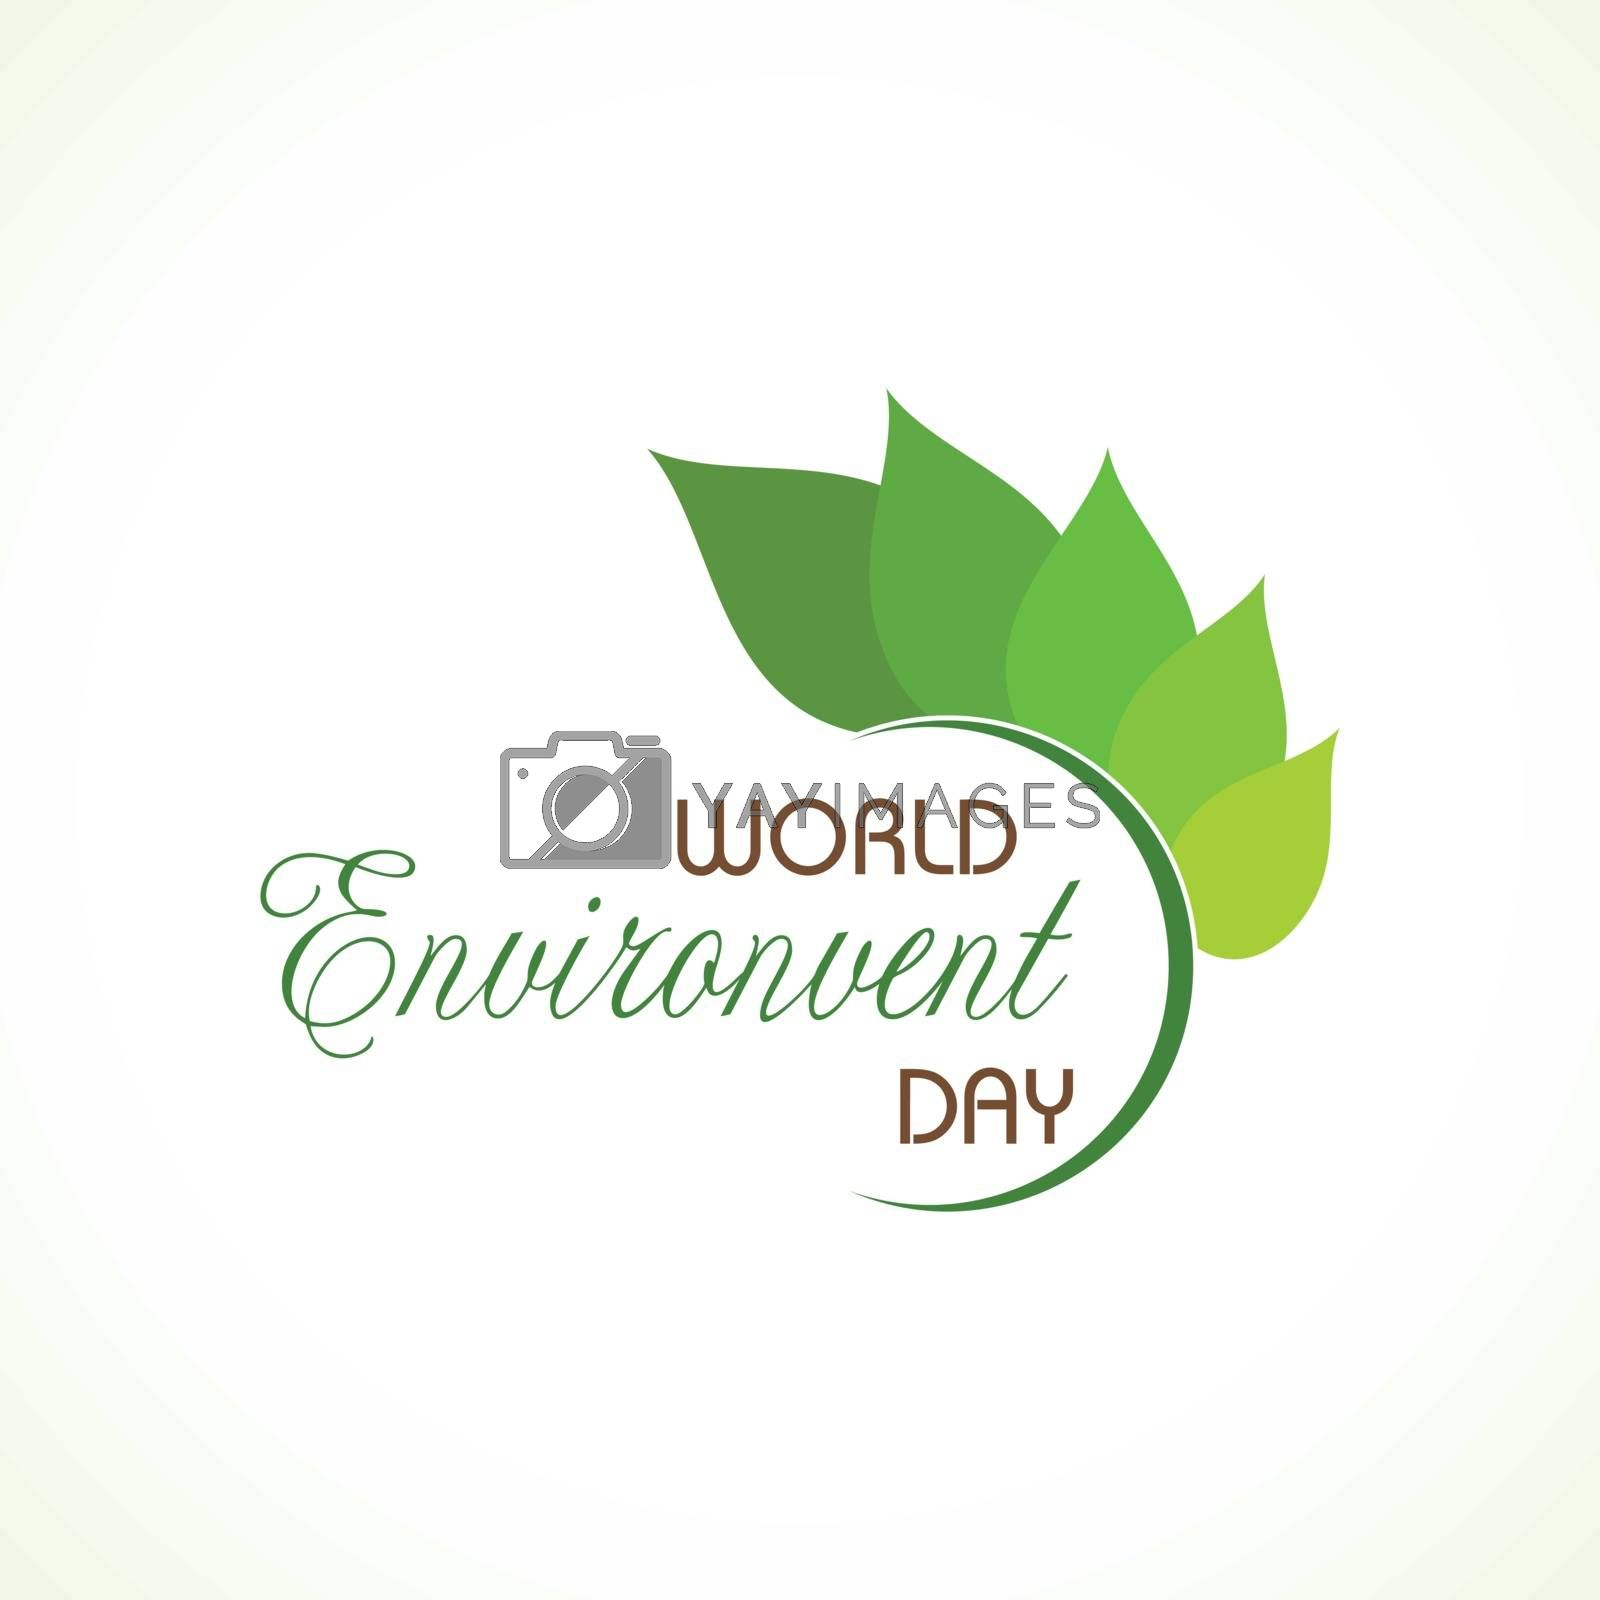 Vector Illustration for World Environment day concept logo design - 5th June World Environment day Awareness Idea Campaign.